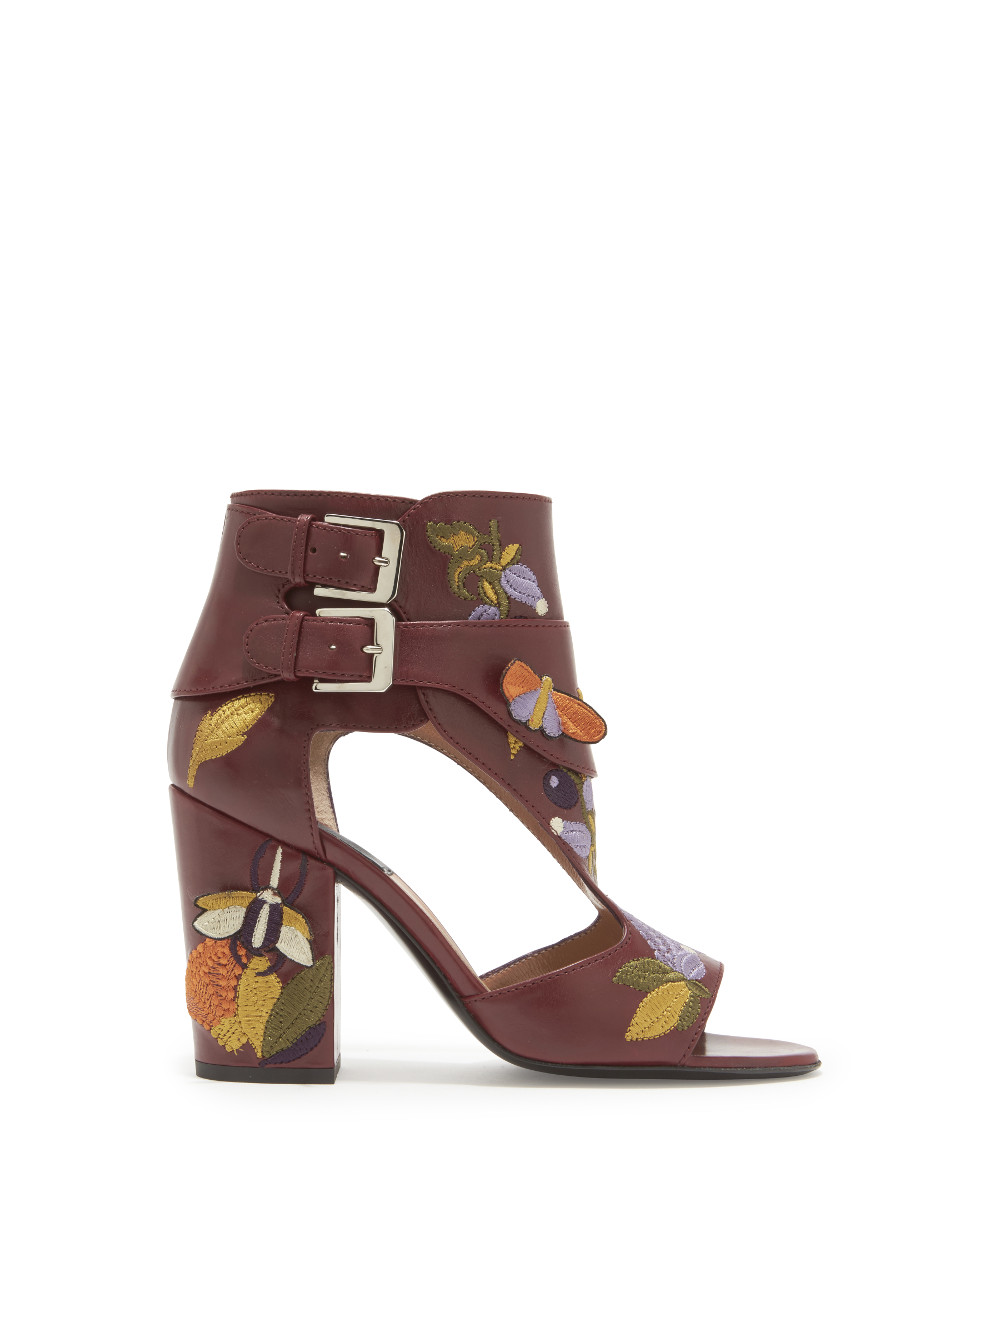 69-LD_Womens_PF17_Rush_EmbroideredShinyCalf_WineMulti_15916.jpg